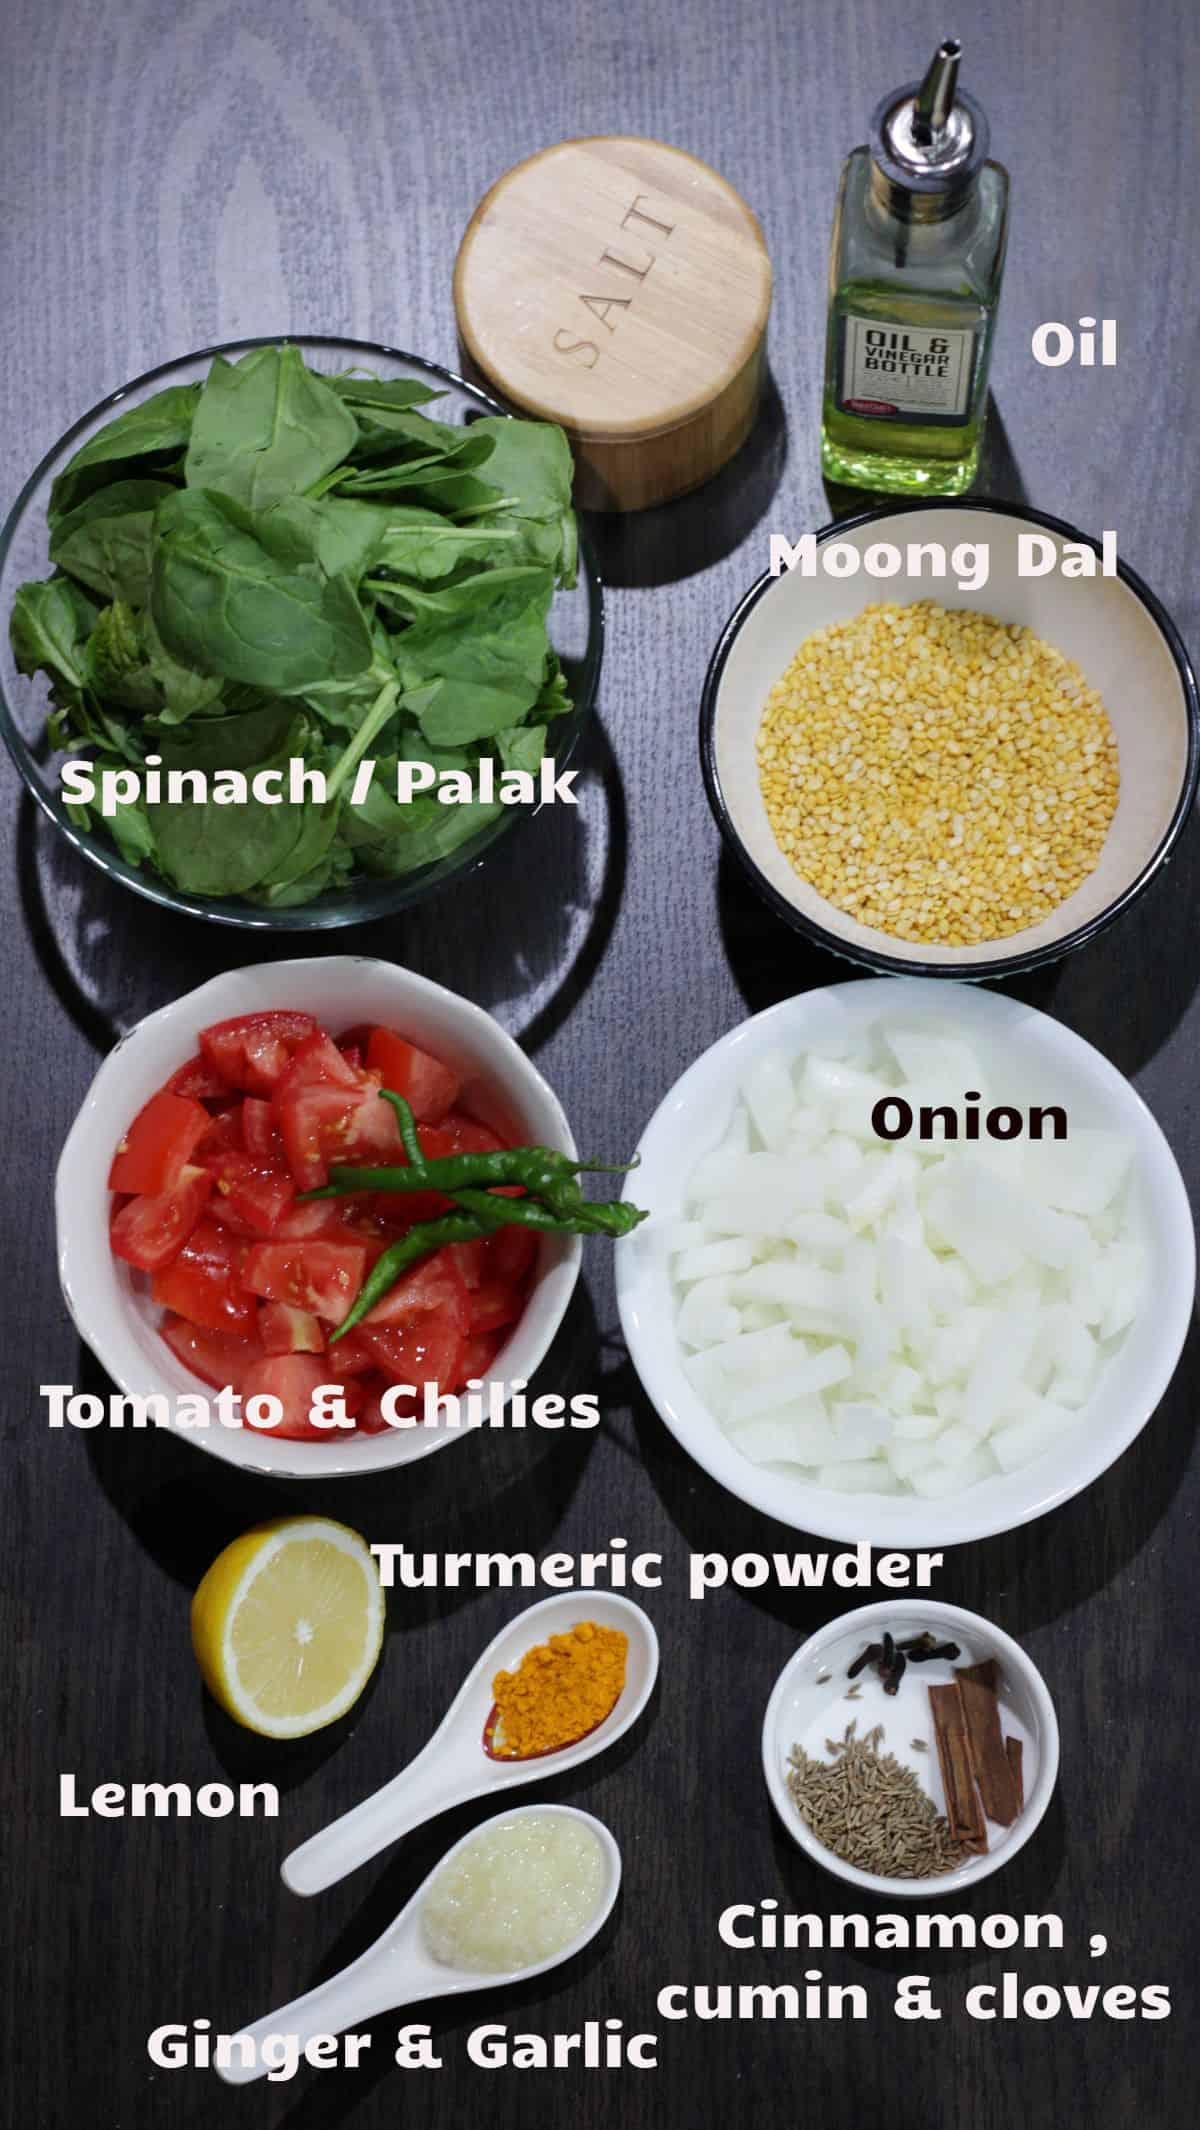 Ingredients labeled for dal palak